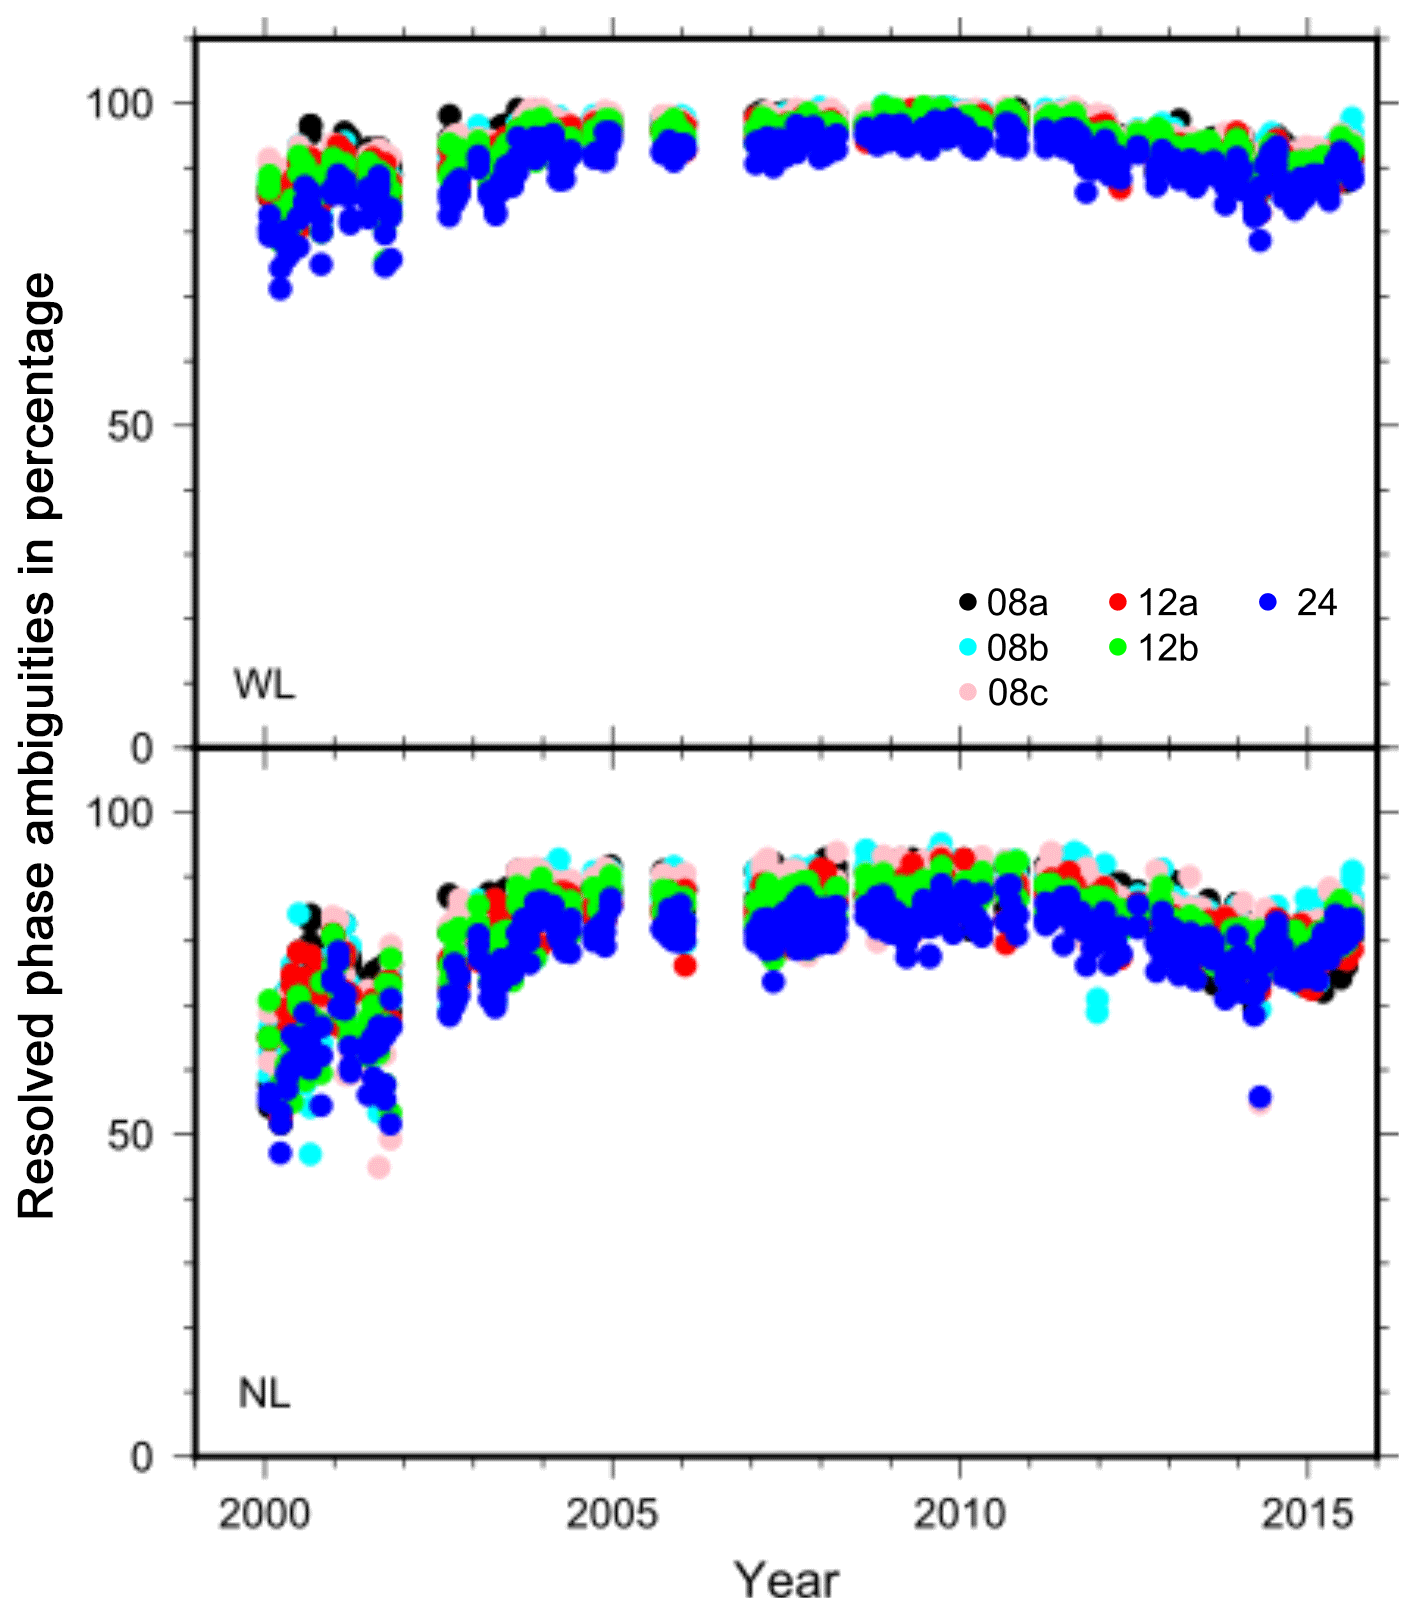 NHESS - Assessment of geodetic velocities using GPS campaign